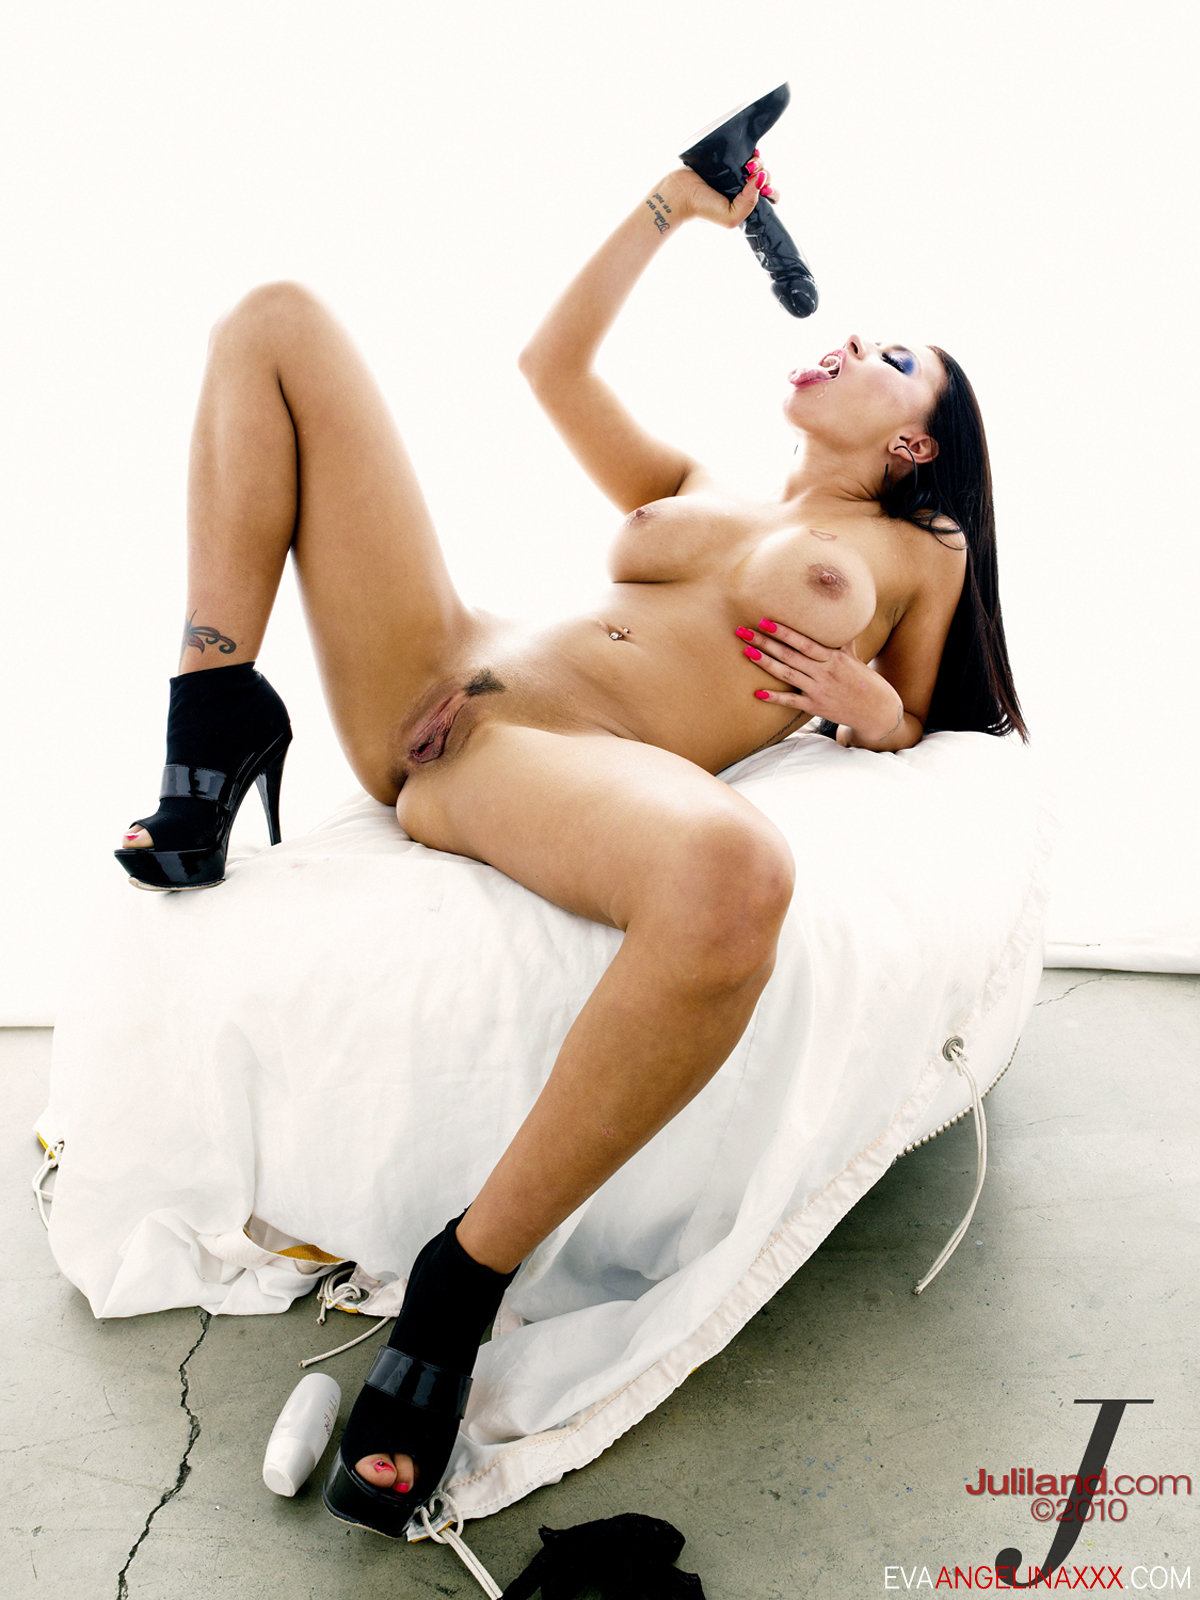 Eva Angelina - Black And White Nude With Toys 55791-2837